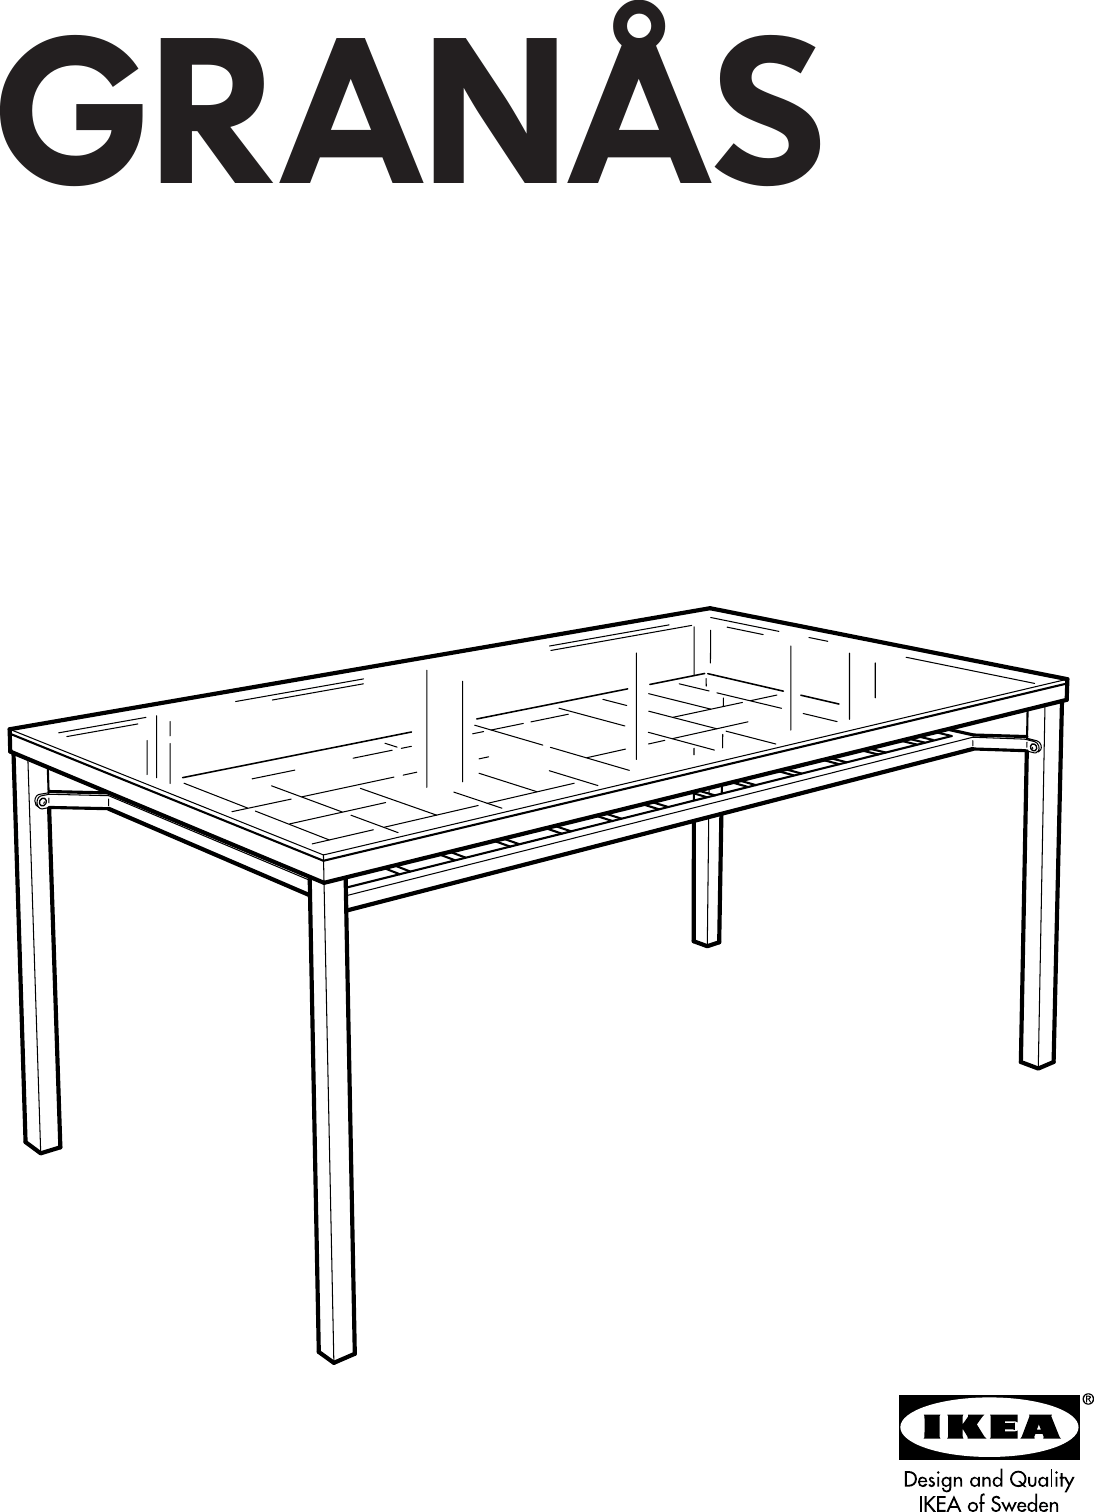 Ikea Granas Dining Table 59X31 Assembly Instruction